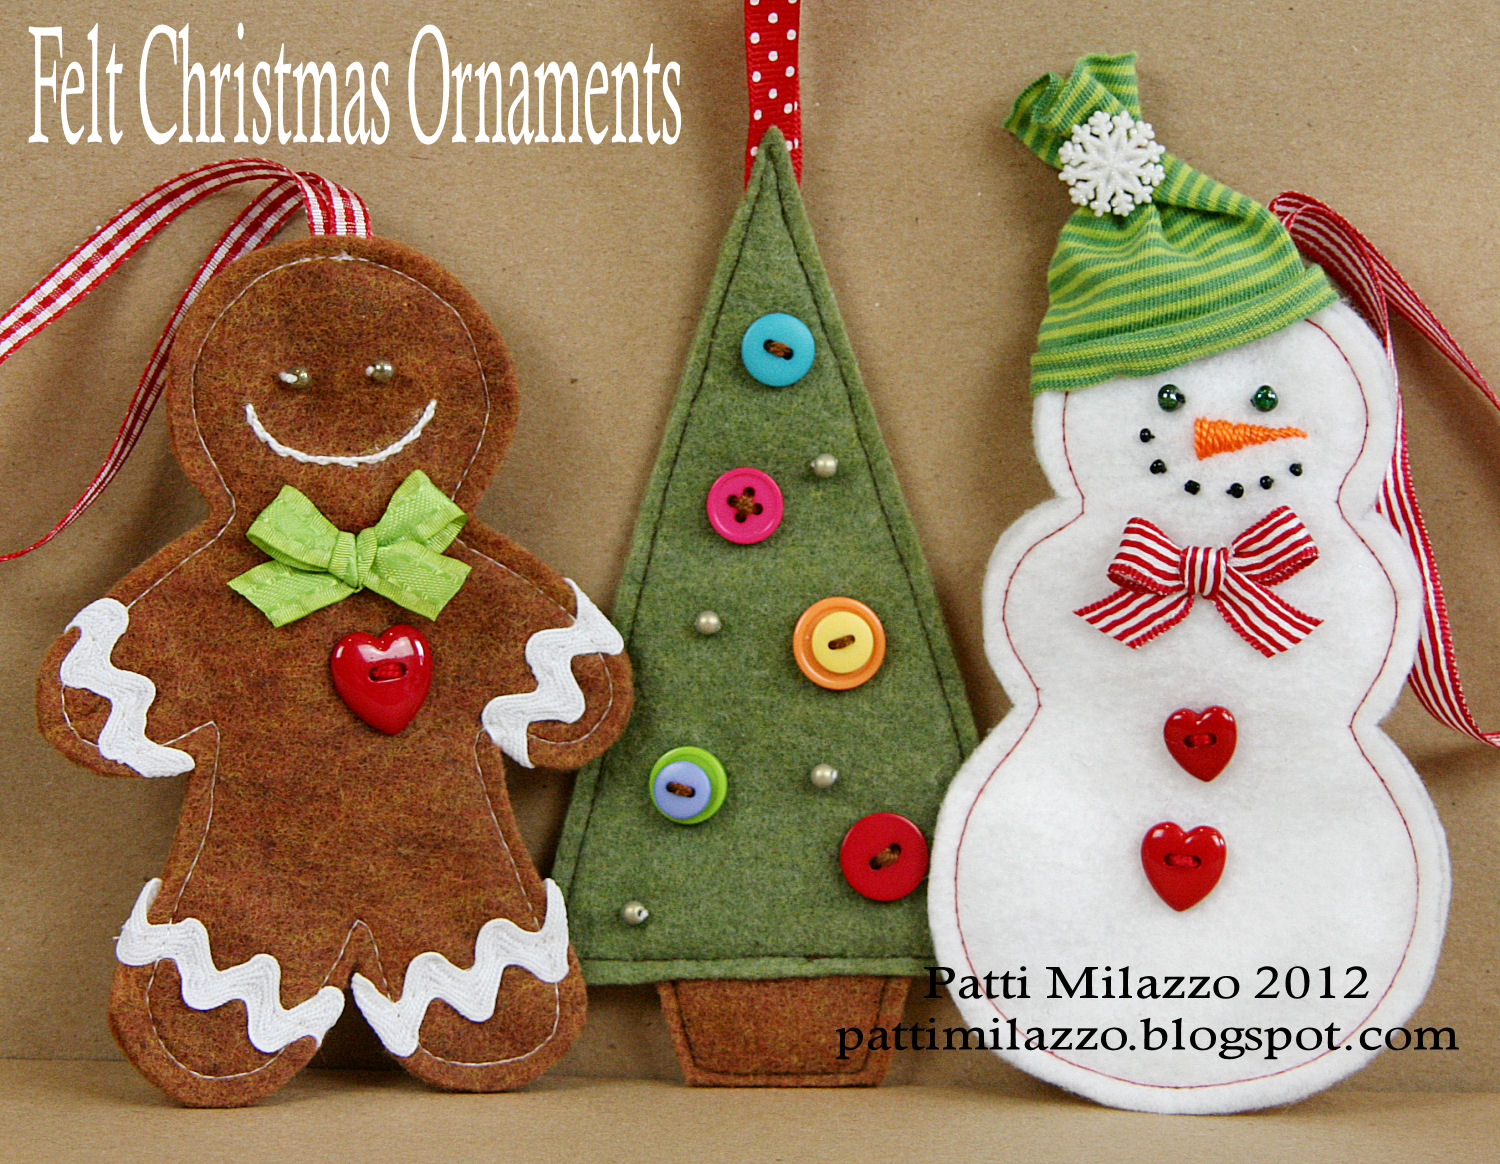 Christmas felt ornaments - The 42 Best Images About Christmas Craft On Pinterest Christmas Trees Felt Christmas Trees And Advent Calendar